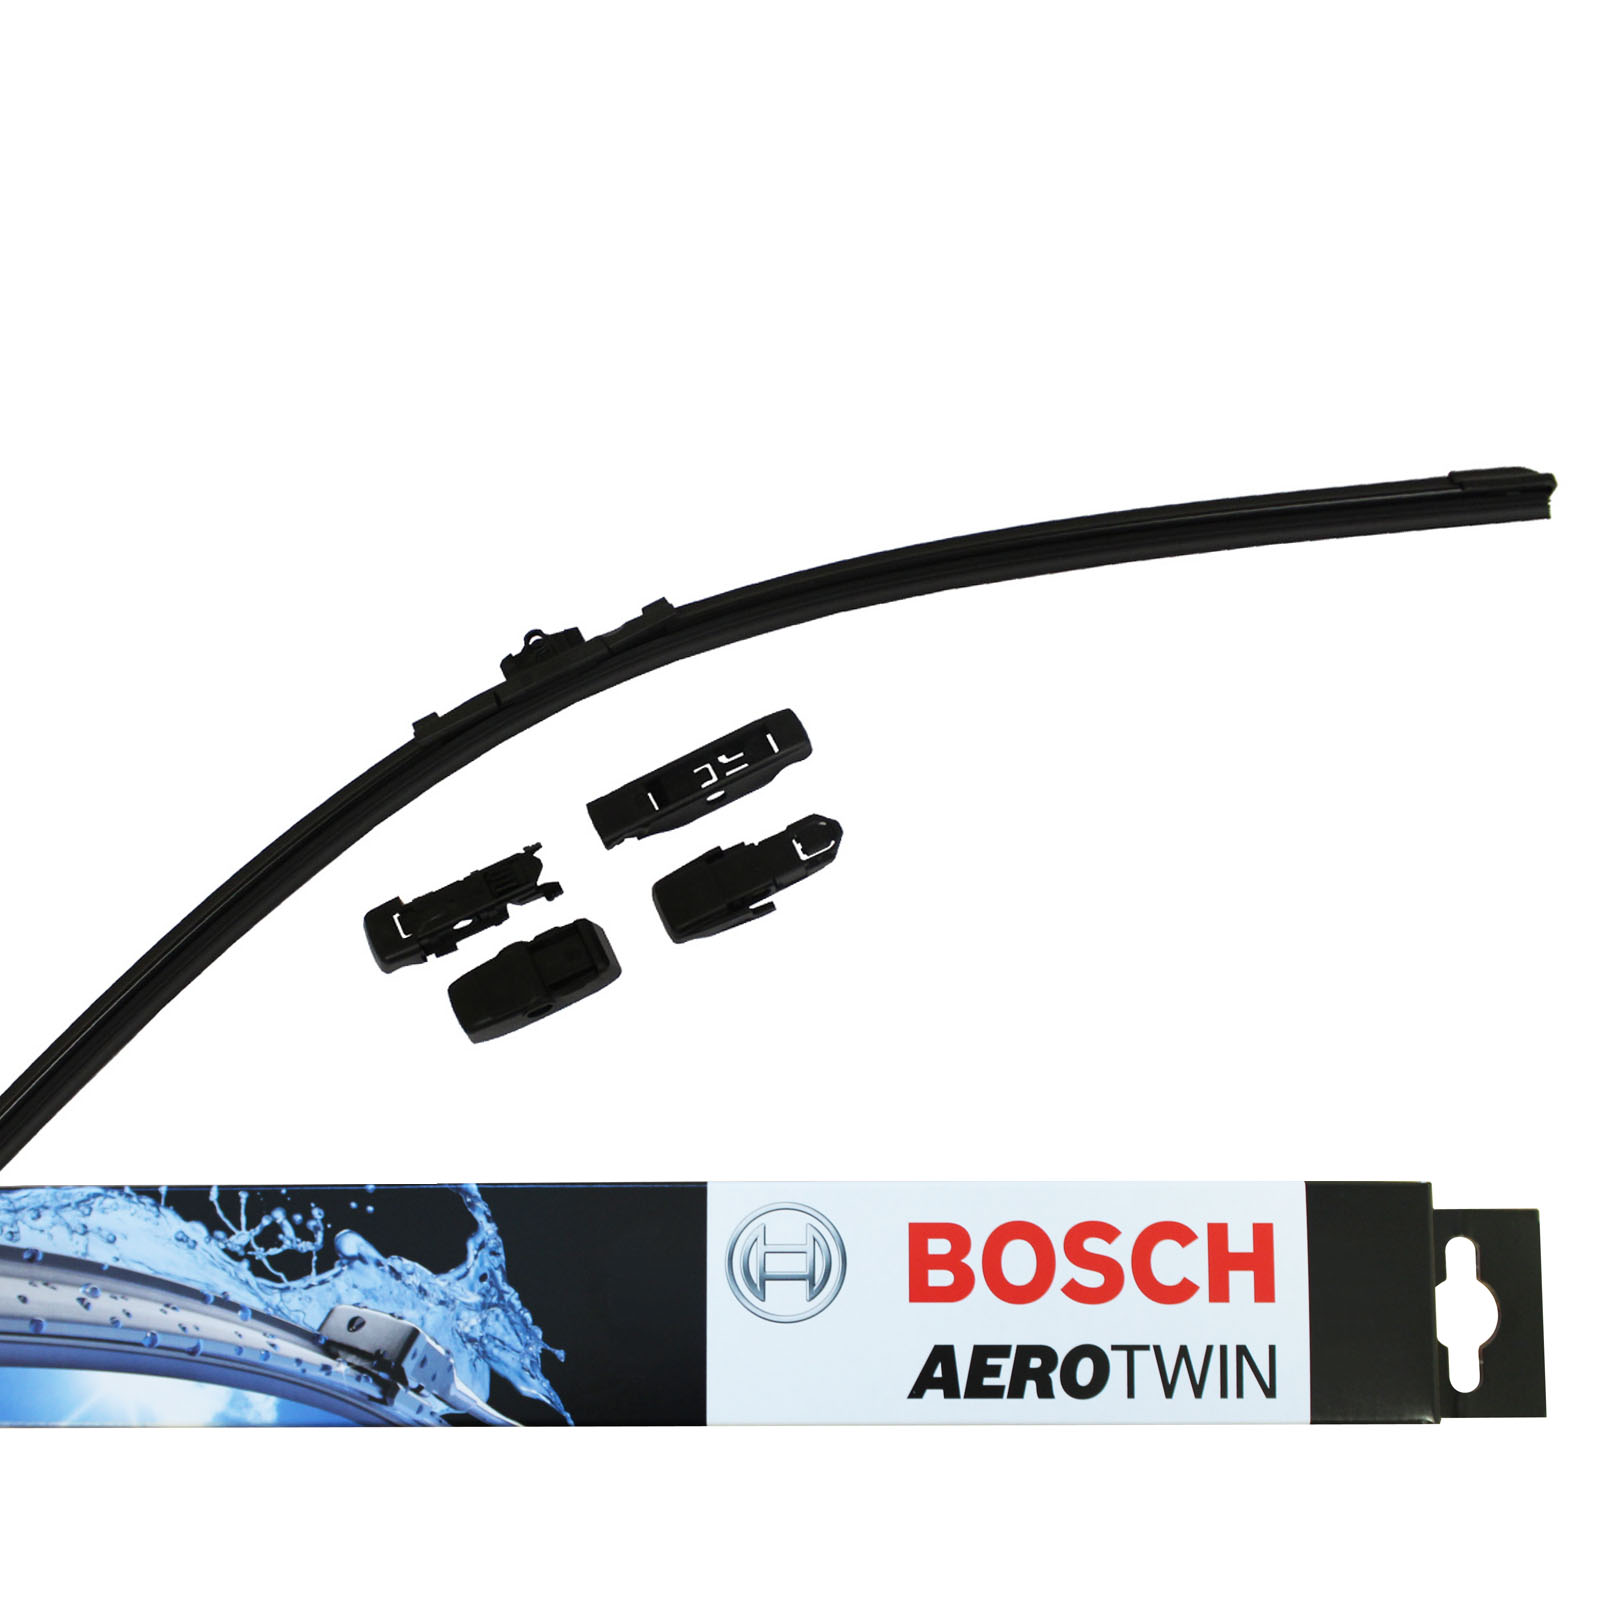 bosch aerotwin passenger wiper blade genuine oe quality front replacement. Black Bedroom Furniture Sets. Home Design Ideas